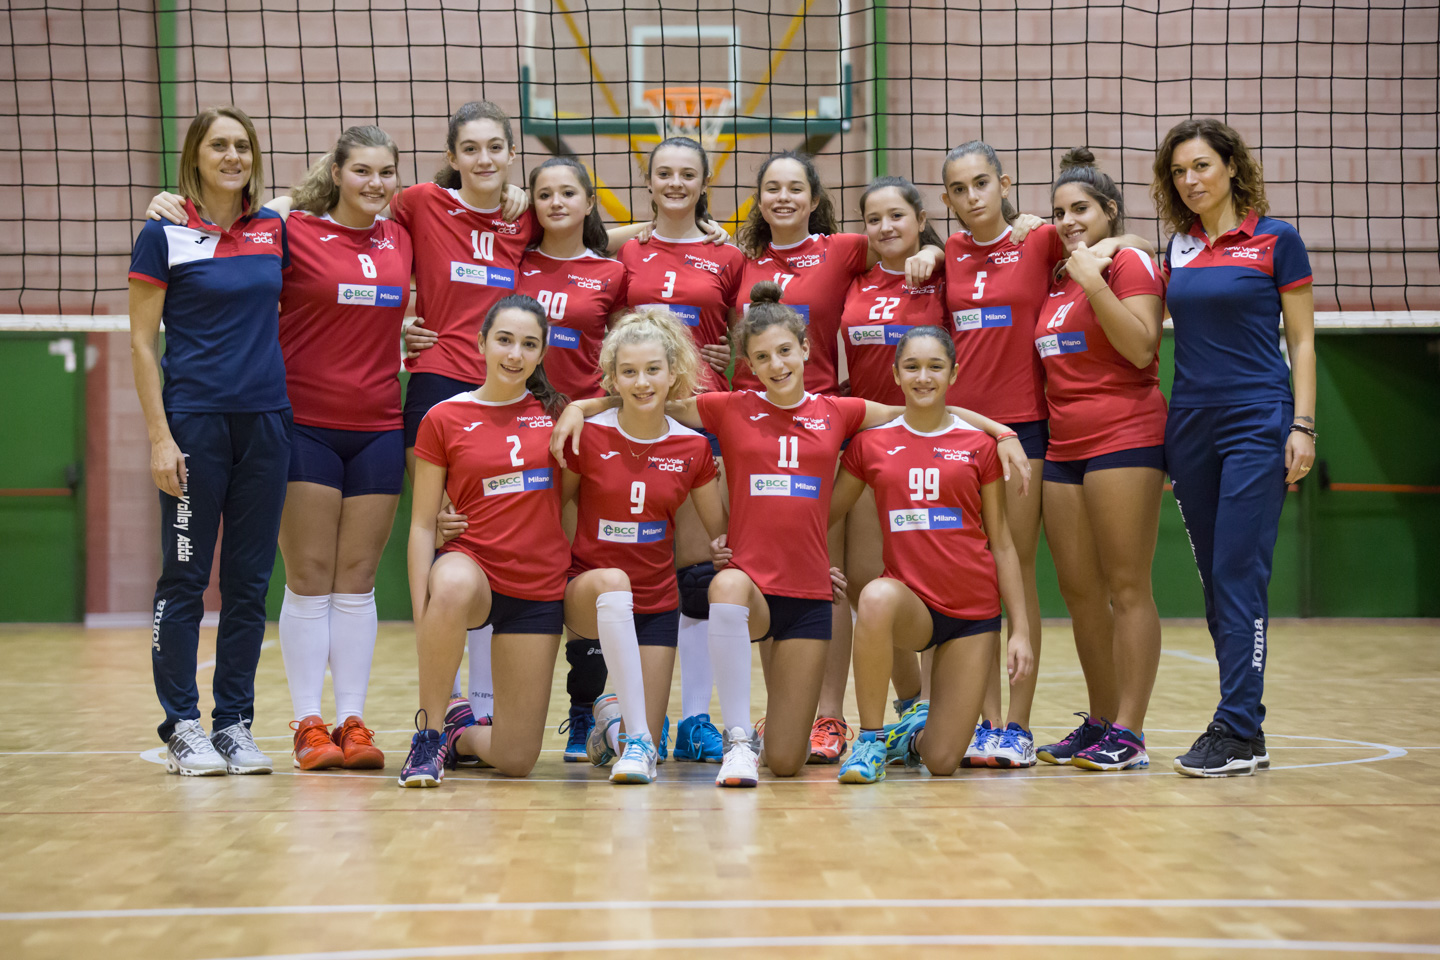 20181115_200204_new_volley_adda_0021